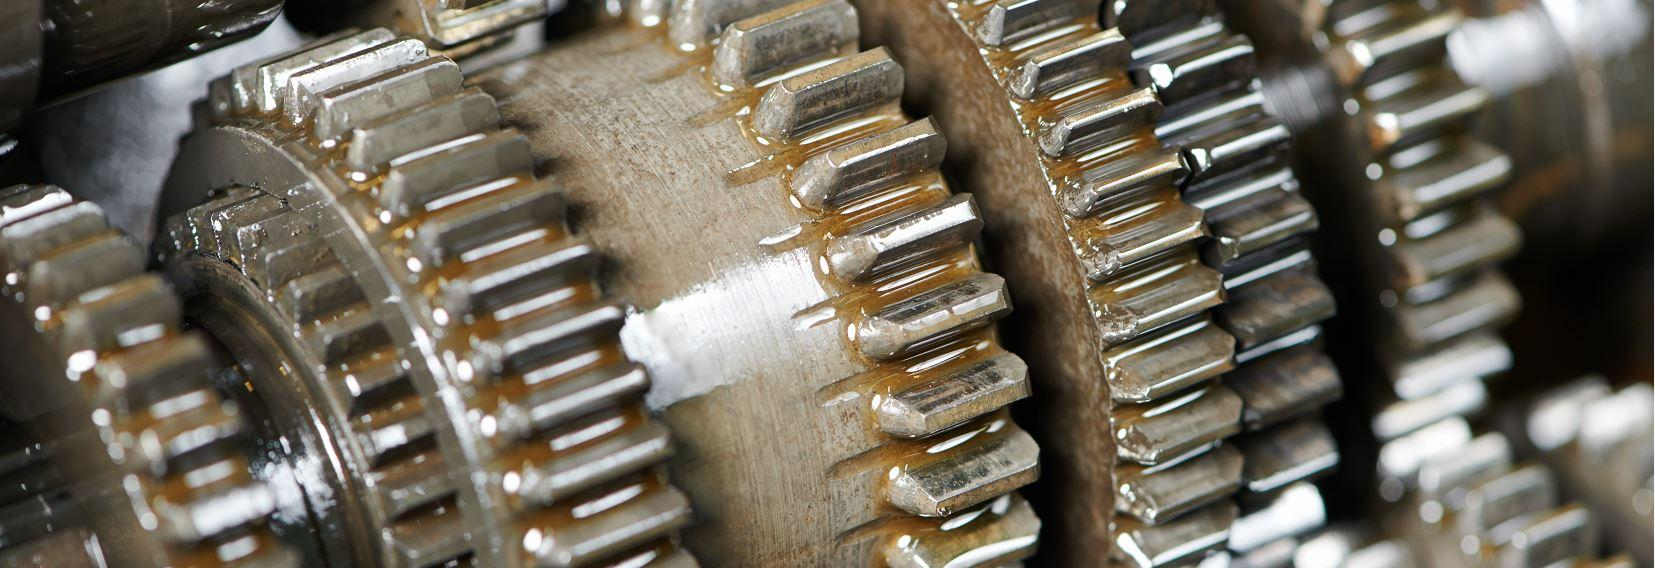 Total Gearbox and transmissions lubricants